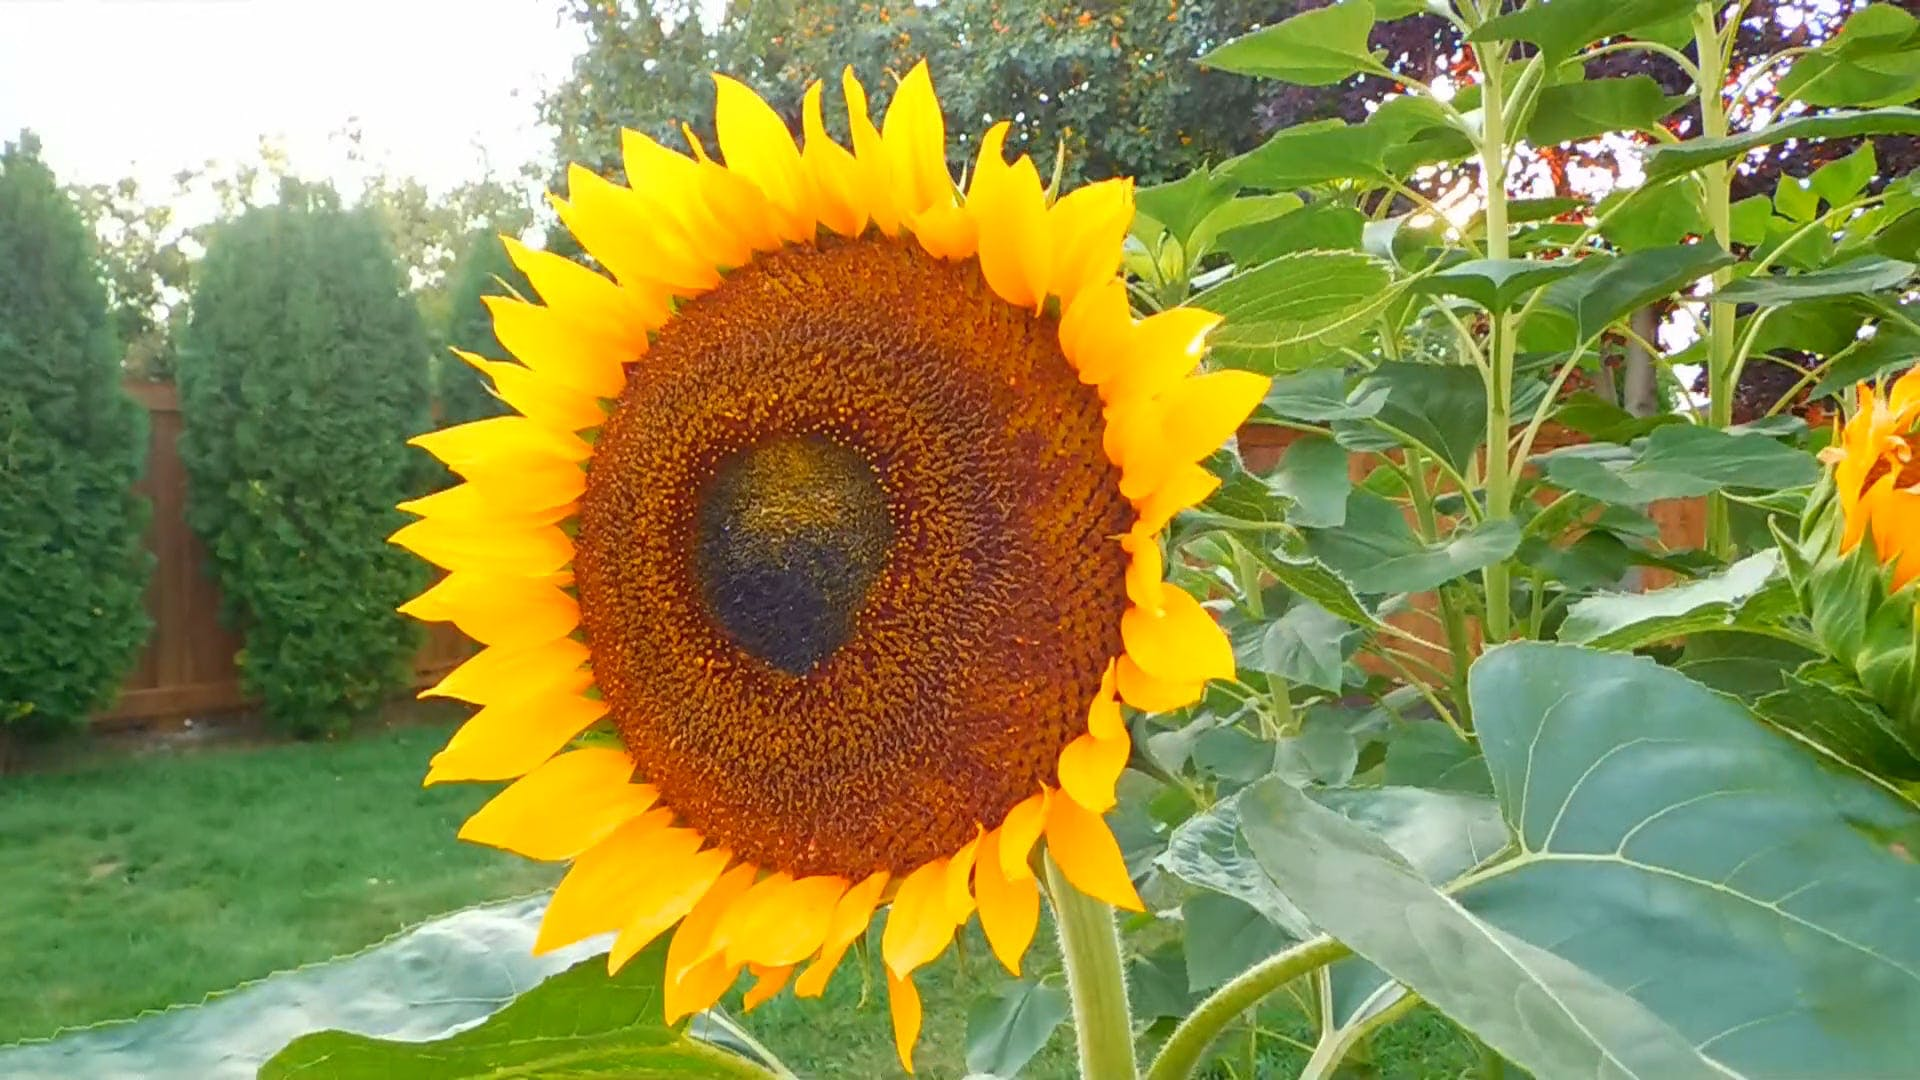 A Garden With Sunflowers